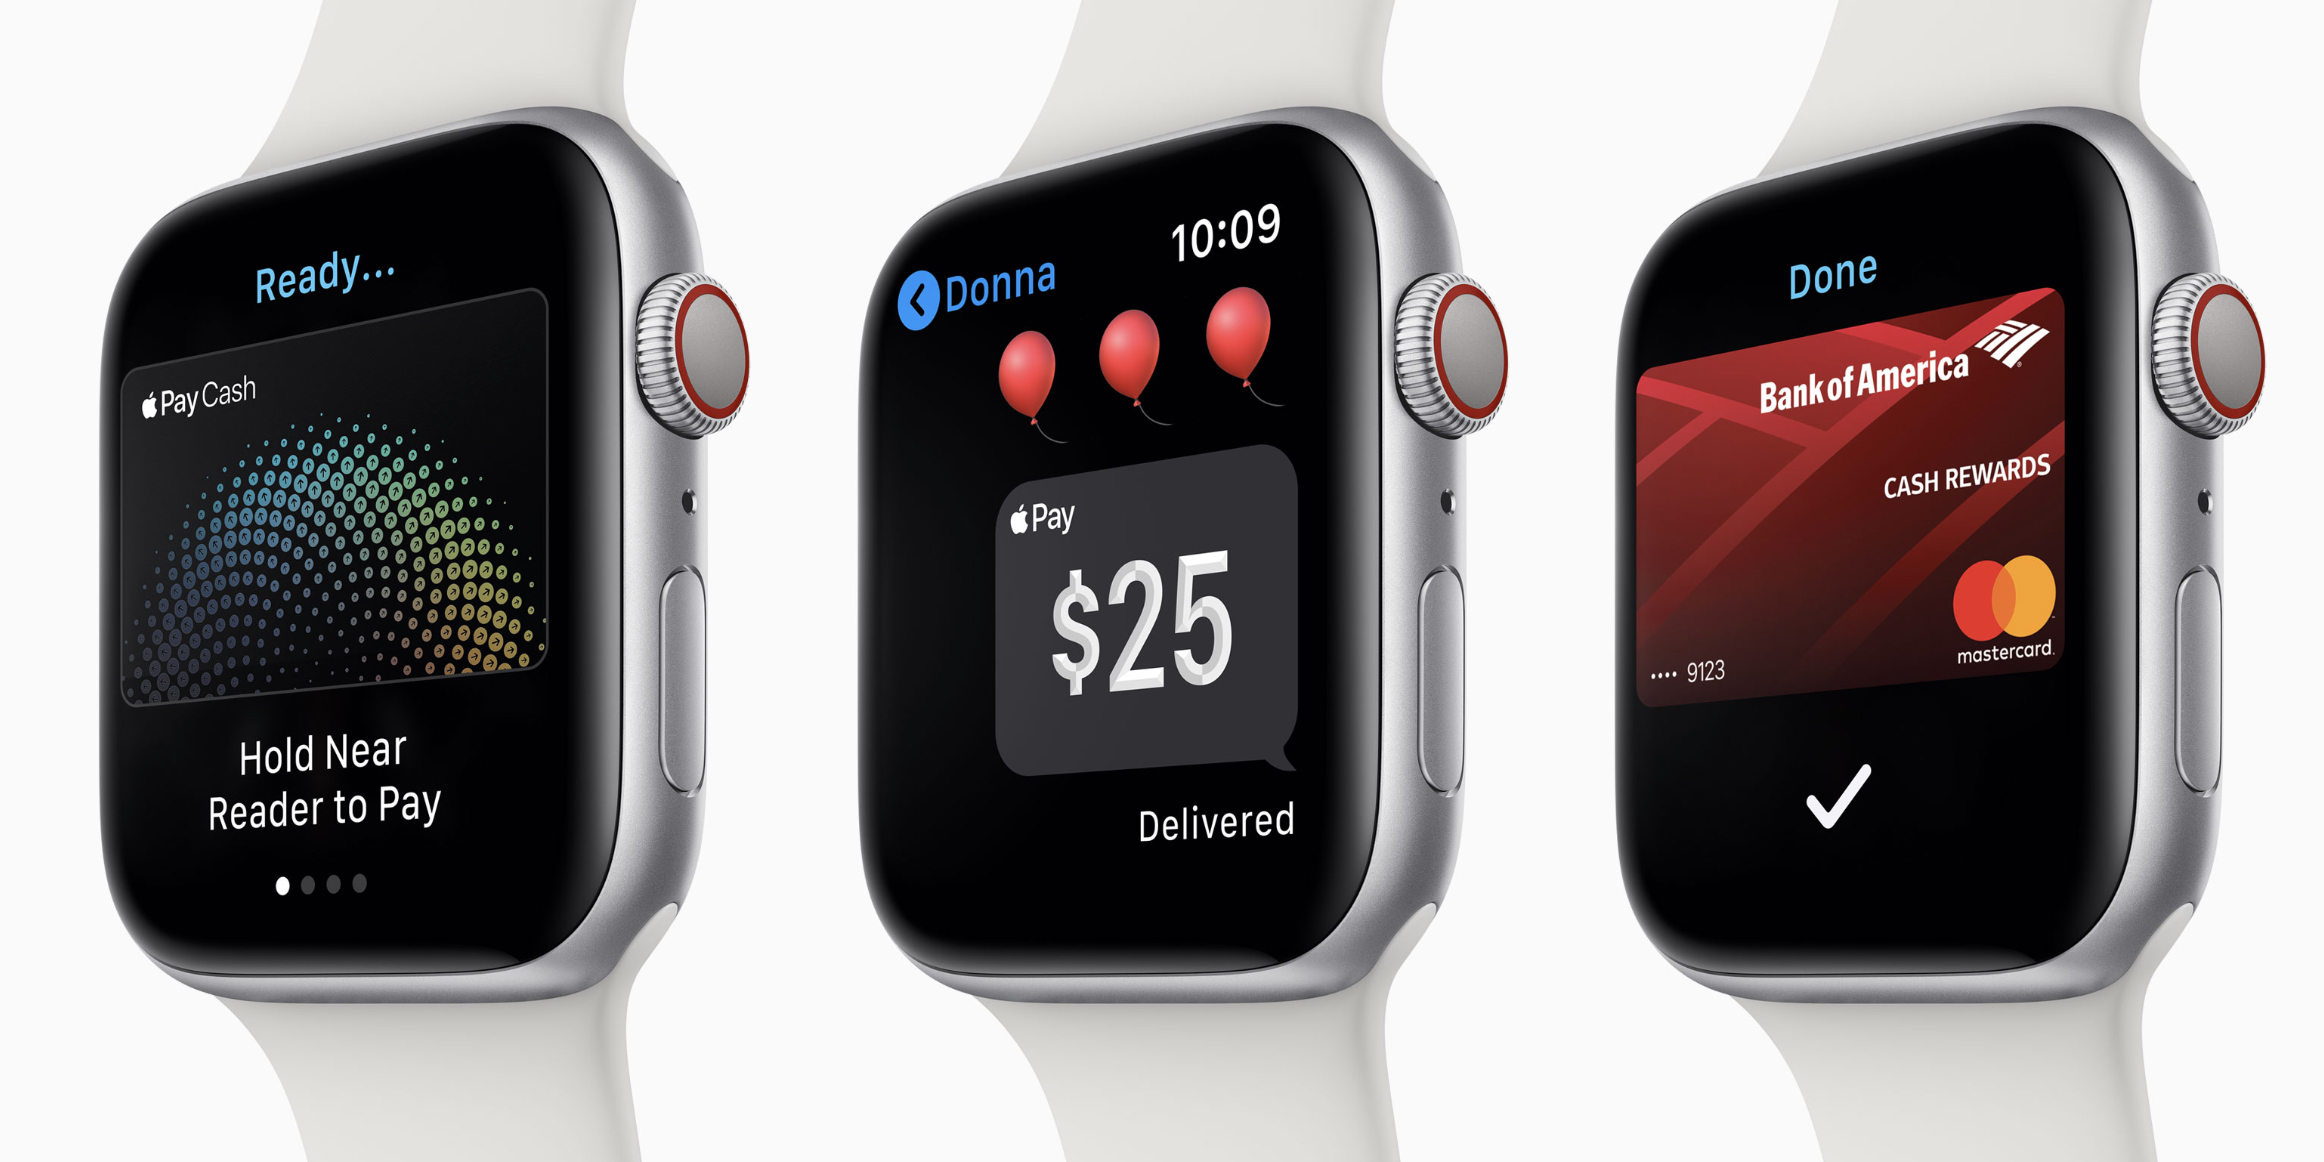 Apple Watch Series 4 sees biggest cash discount yet, now $75 off in various styles